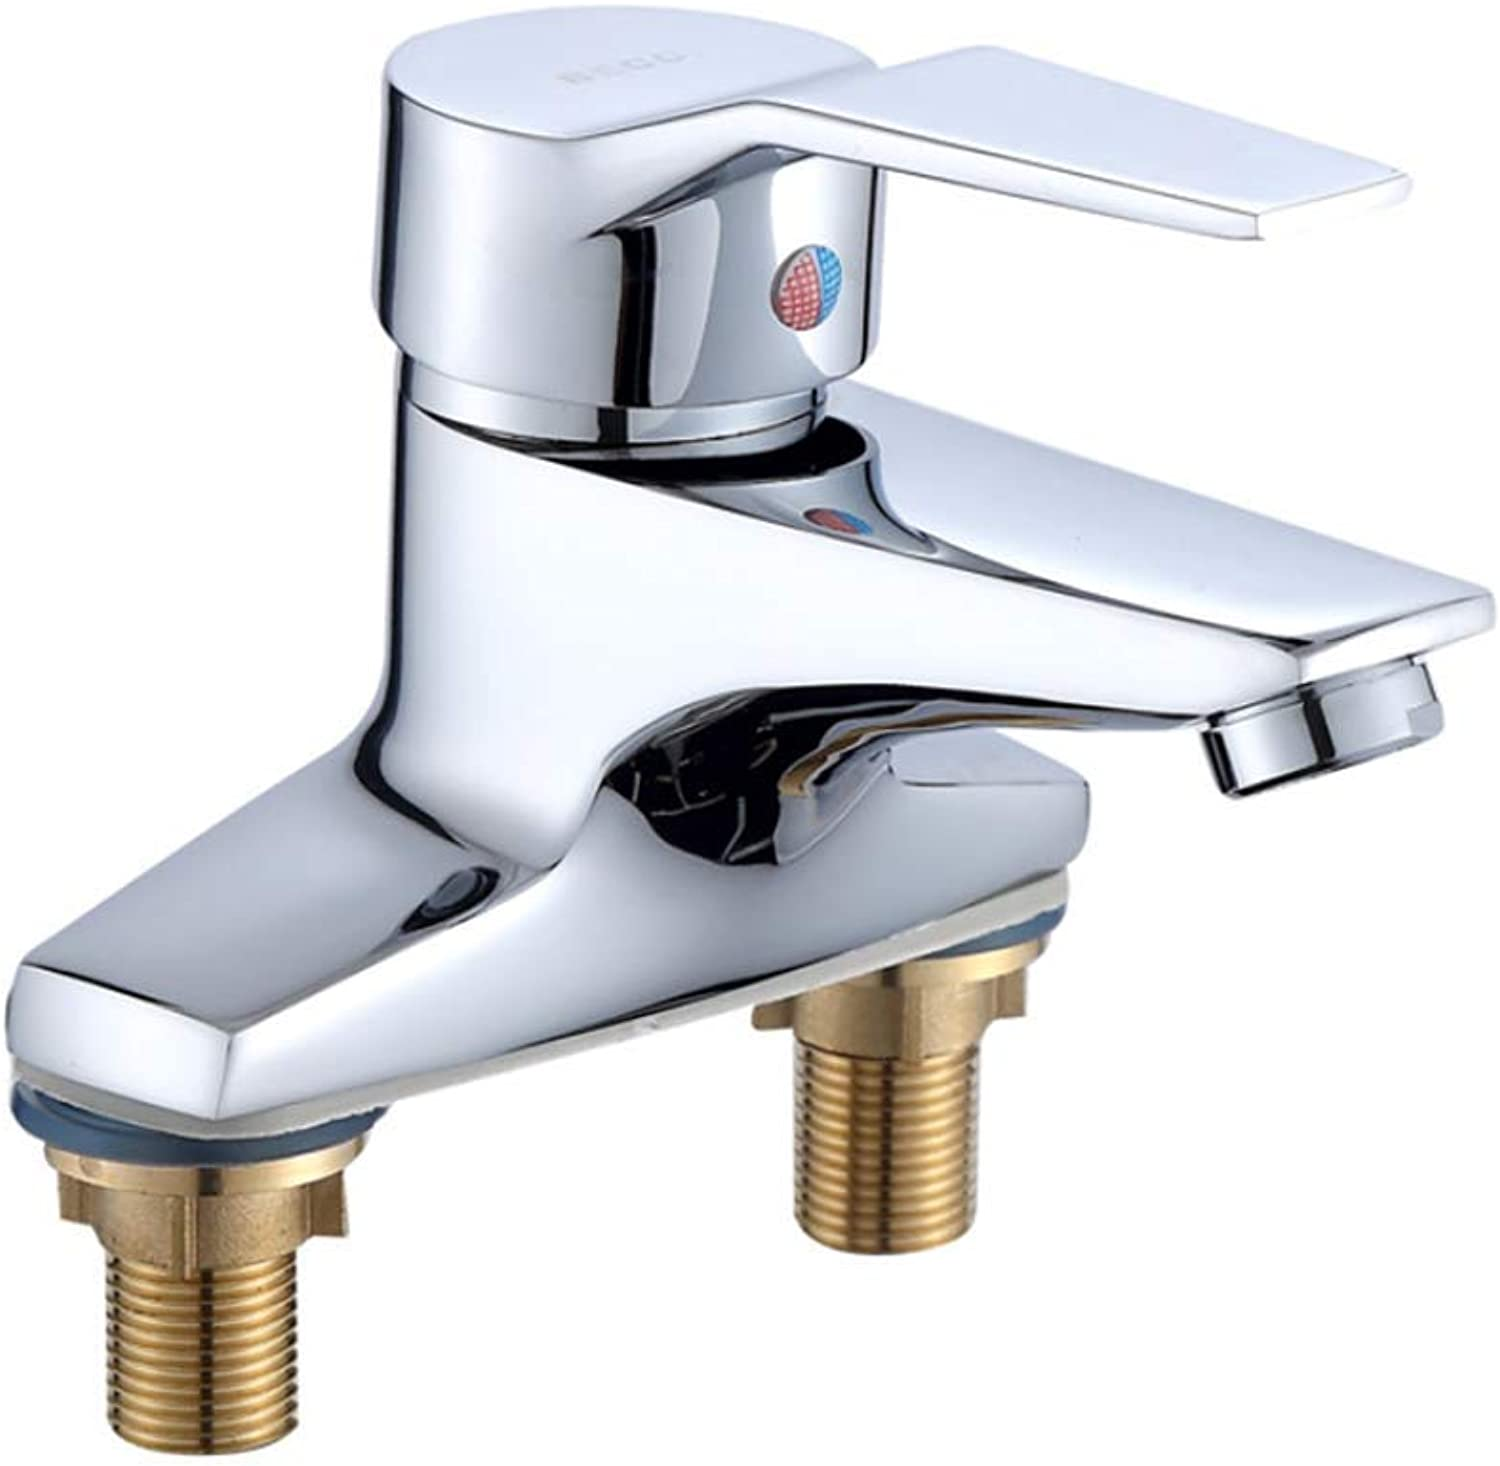 Basin Mixer Tap Bath Fixtures Wash Basinsinkkitchen Copper Double Hole Basin Faucet Two Face Basin Faucet